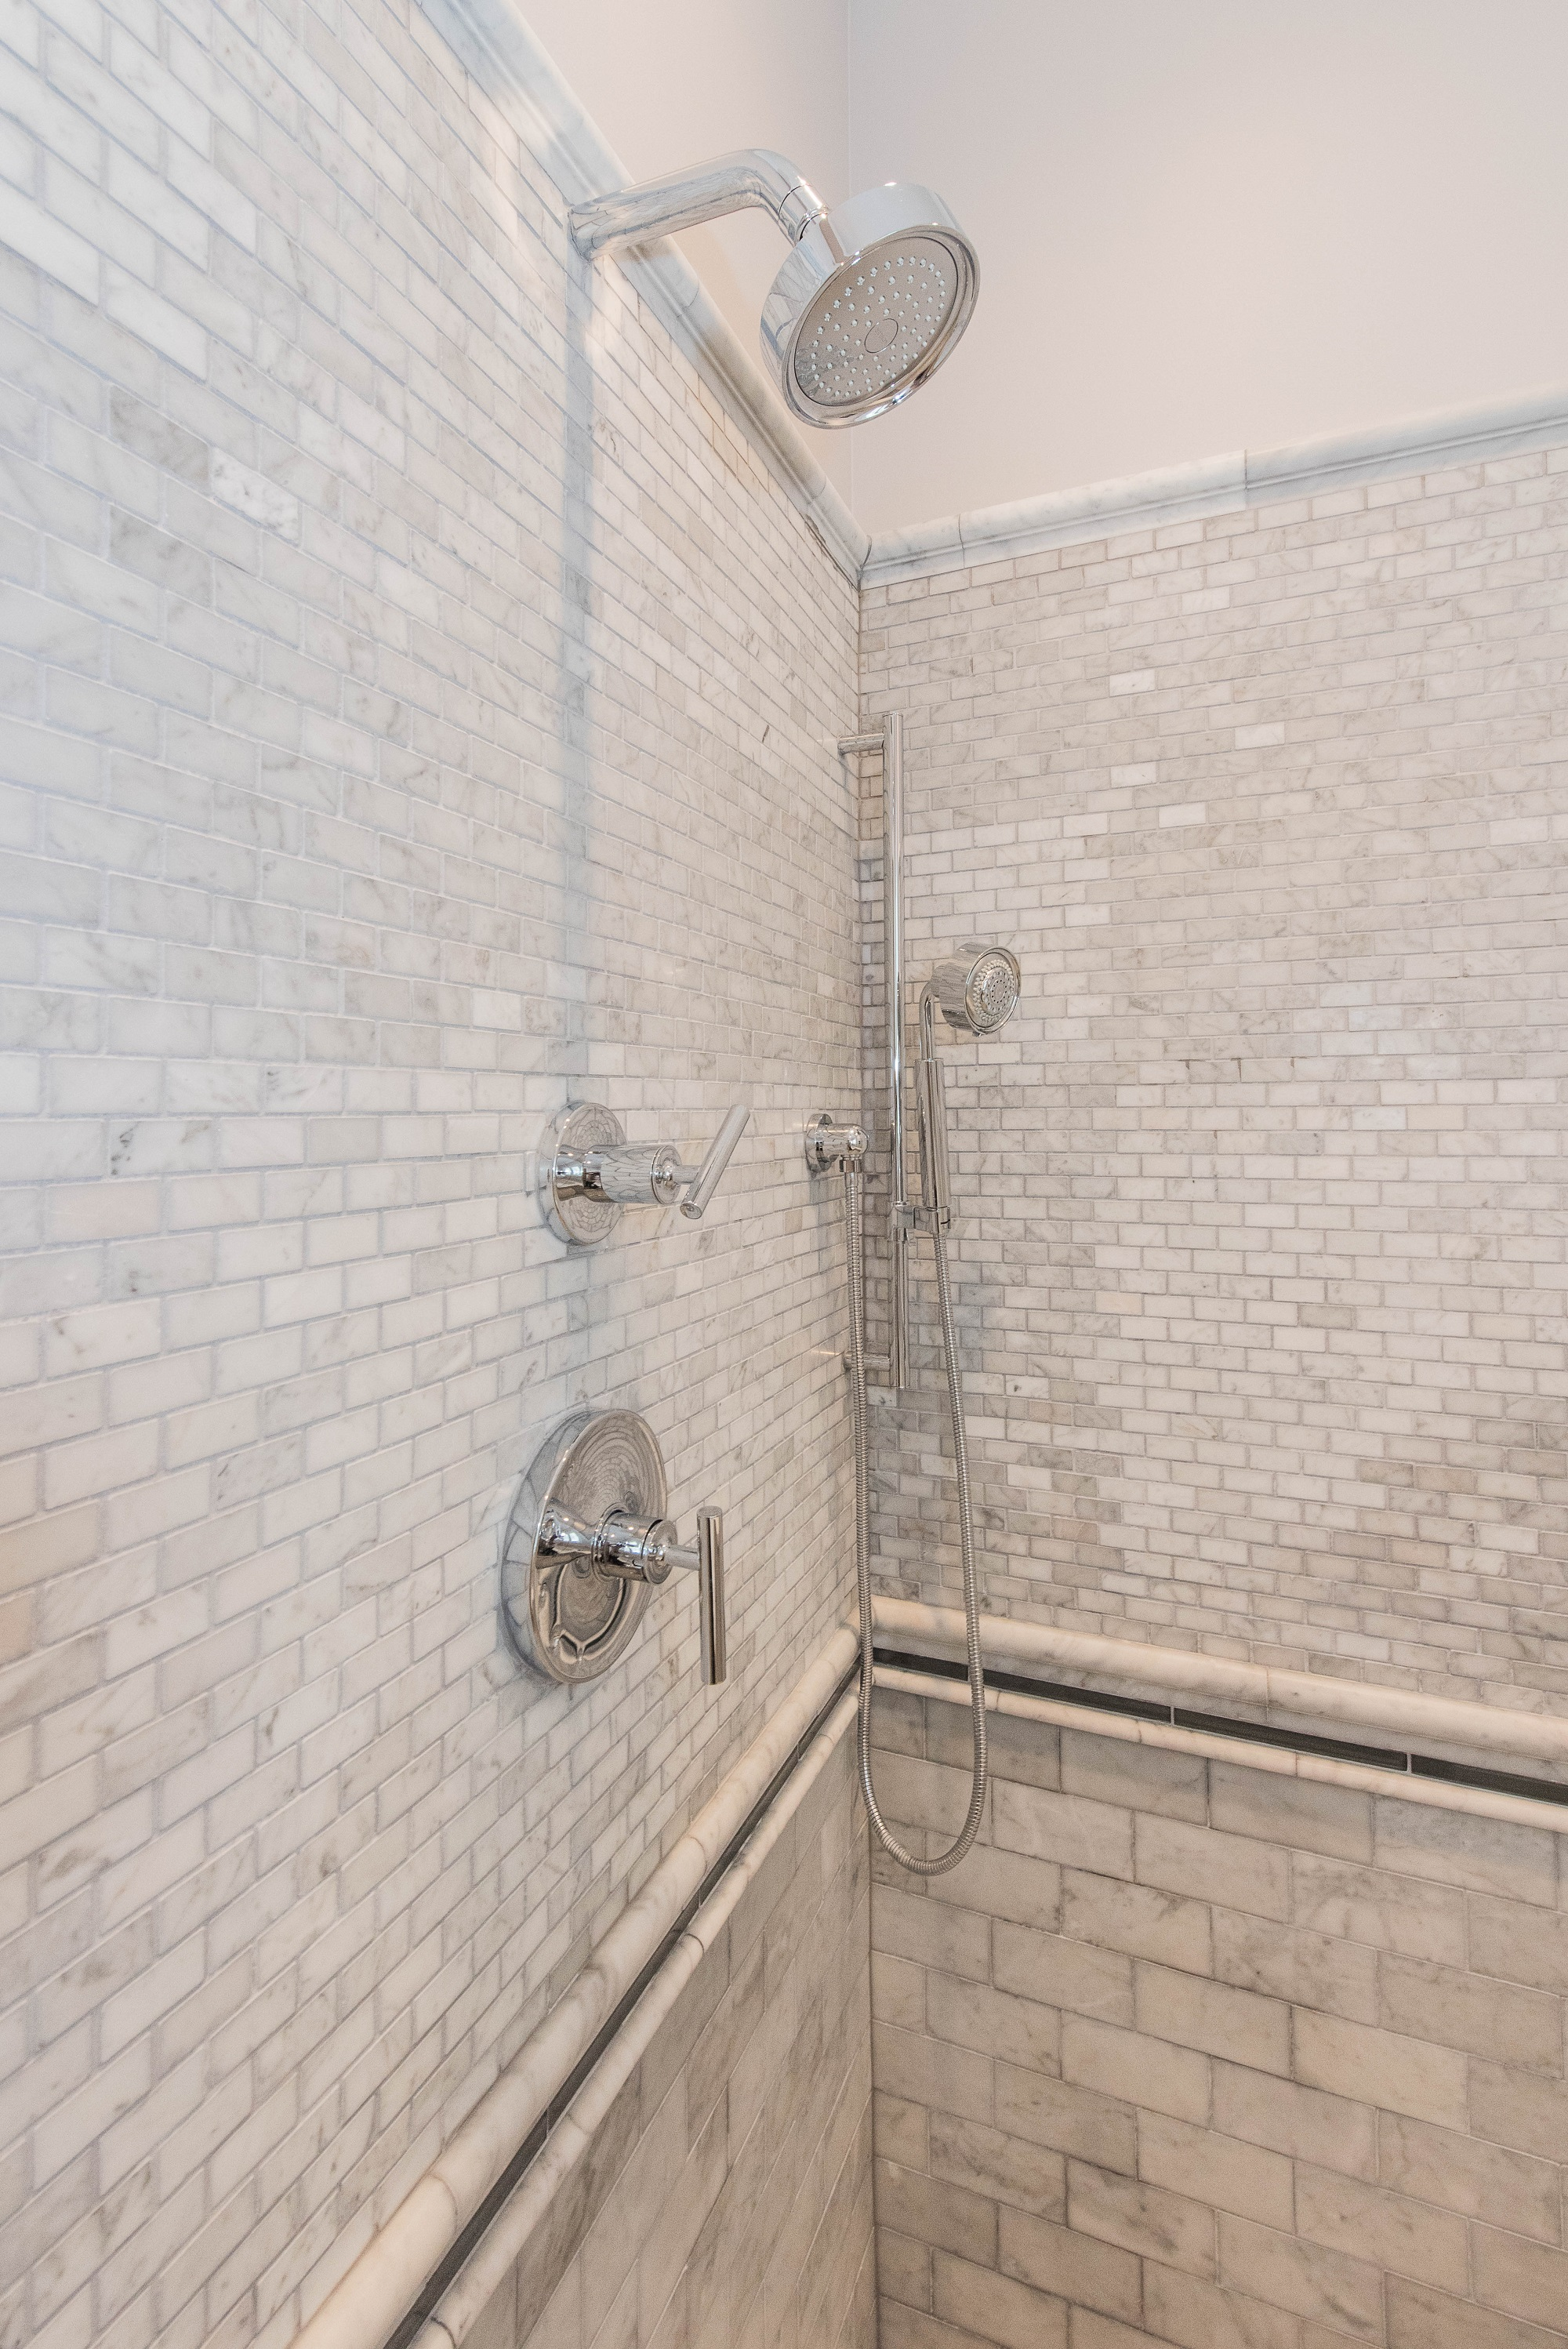 tag archives of top layout graph bath birmingham best kitchen lovely bathroom al remodeling new and